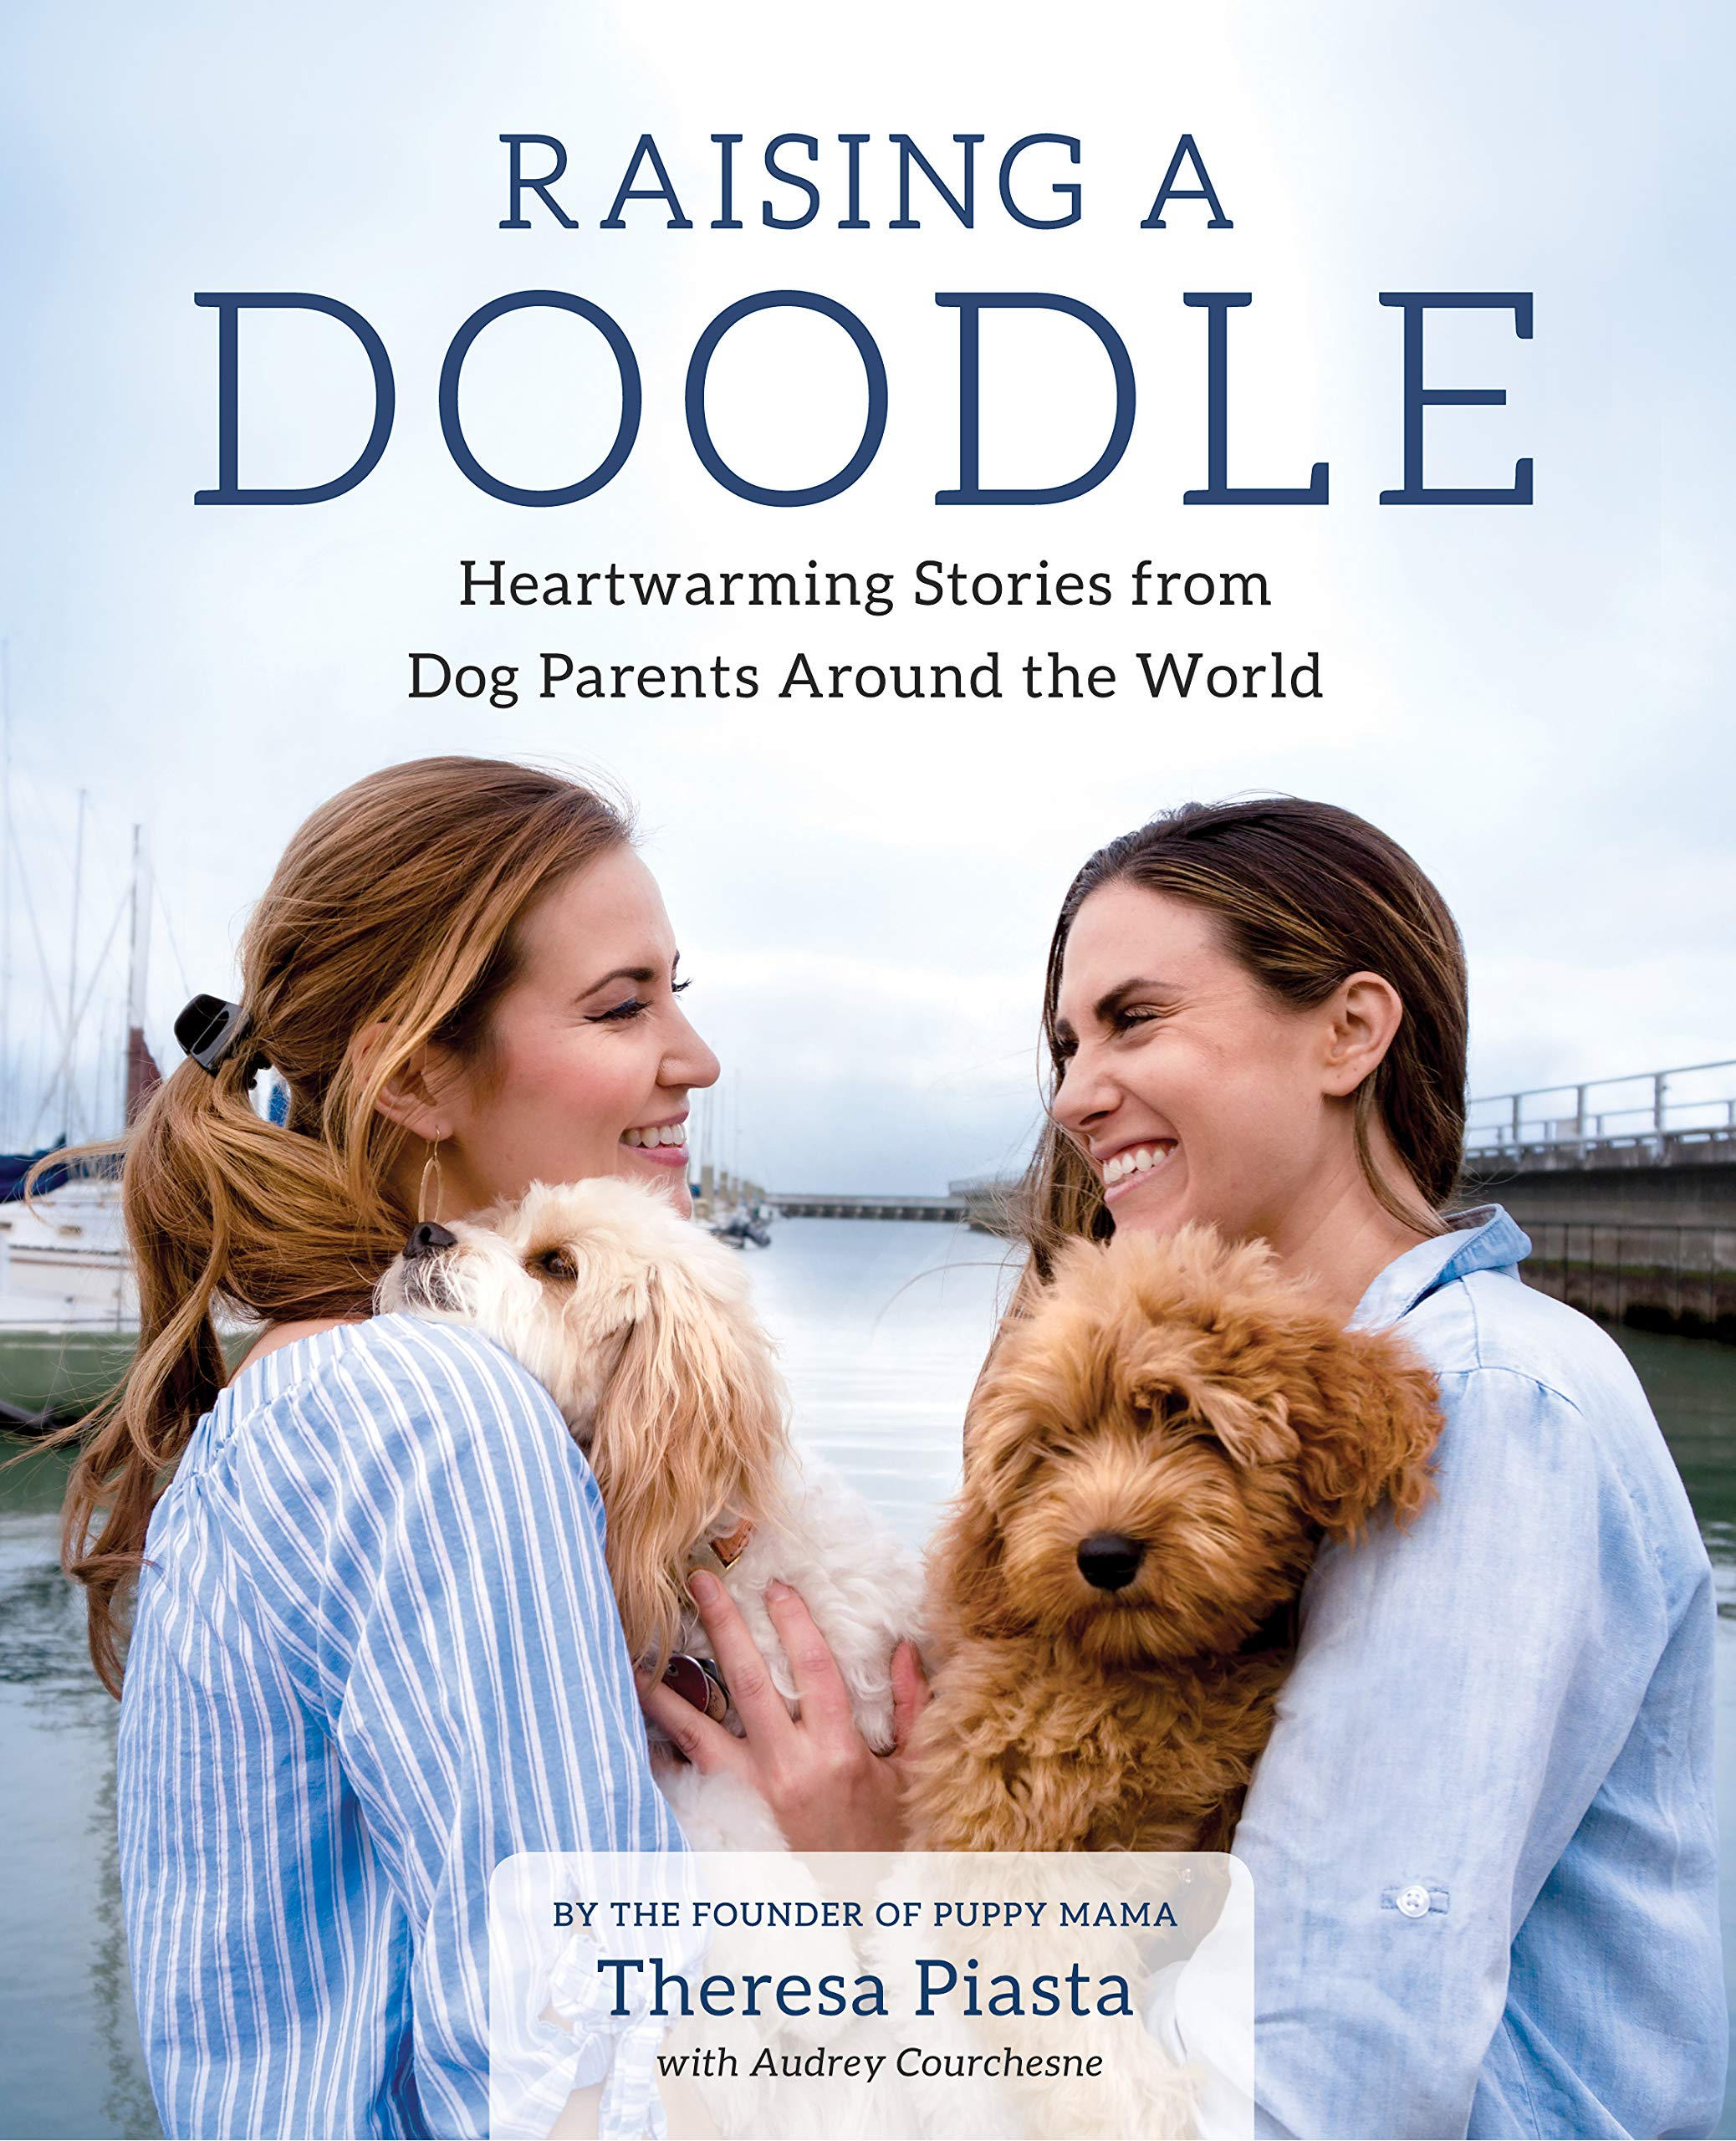 Raising a Doodle: Heartwarming Stories from Dog Parents Around the World by SparkPress